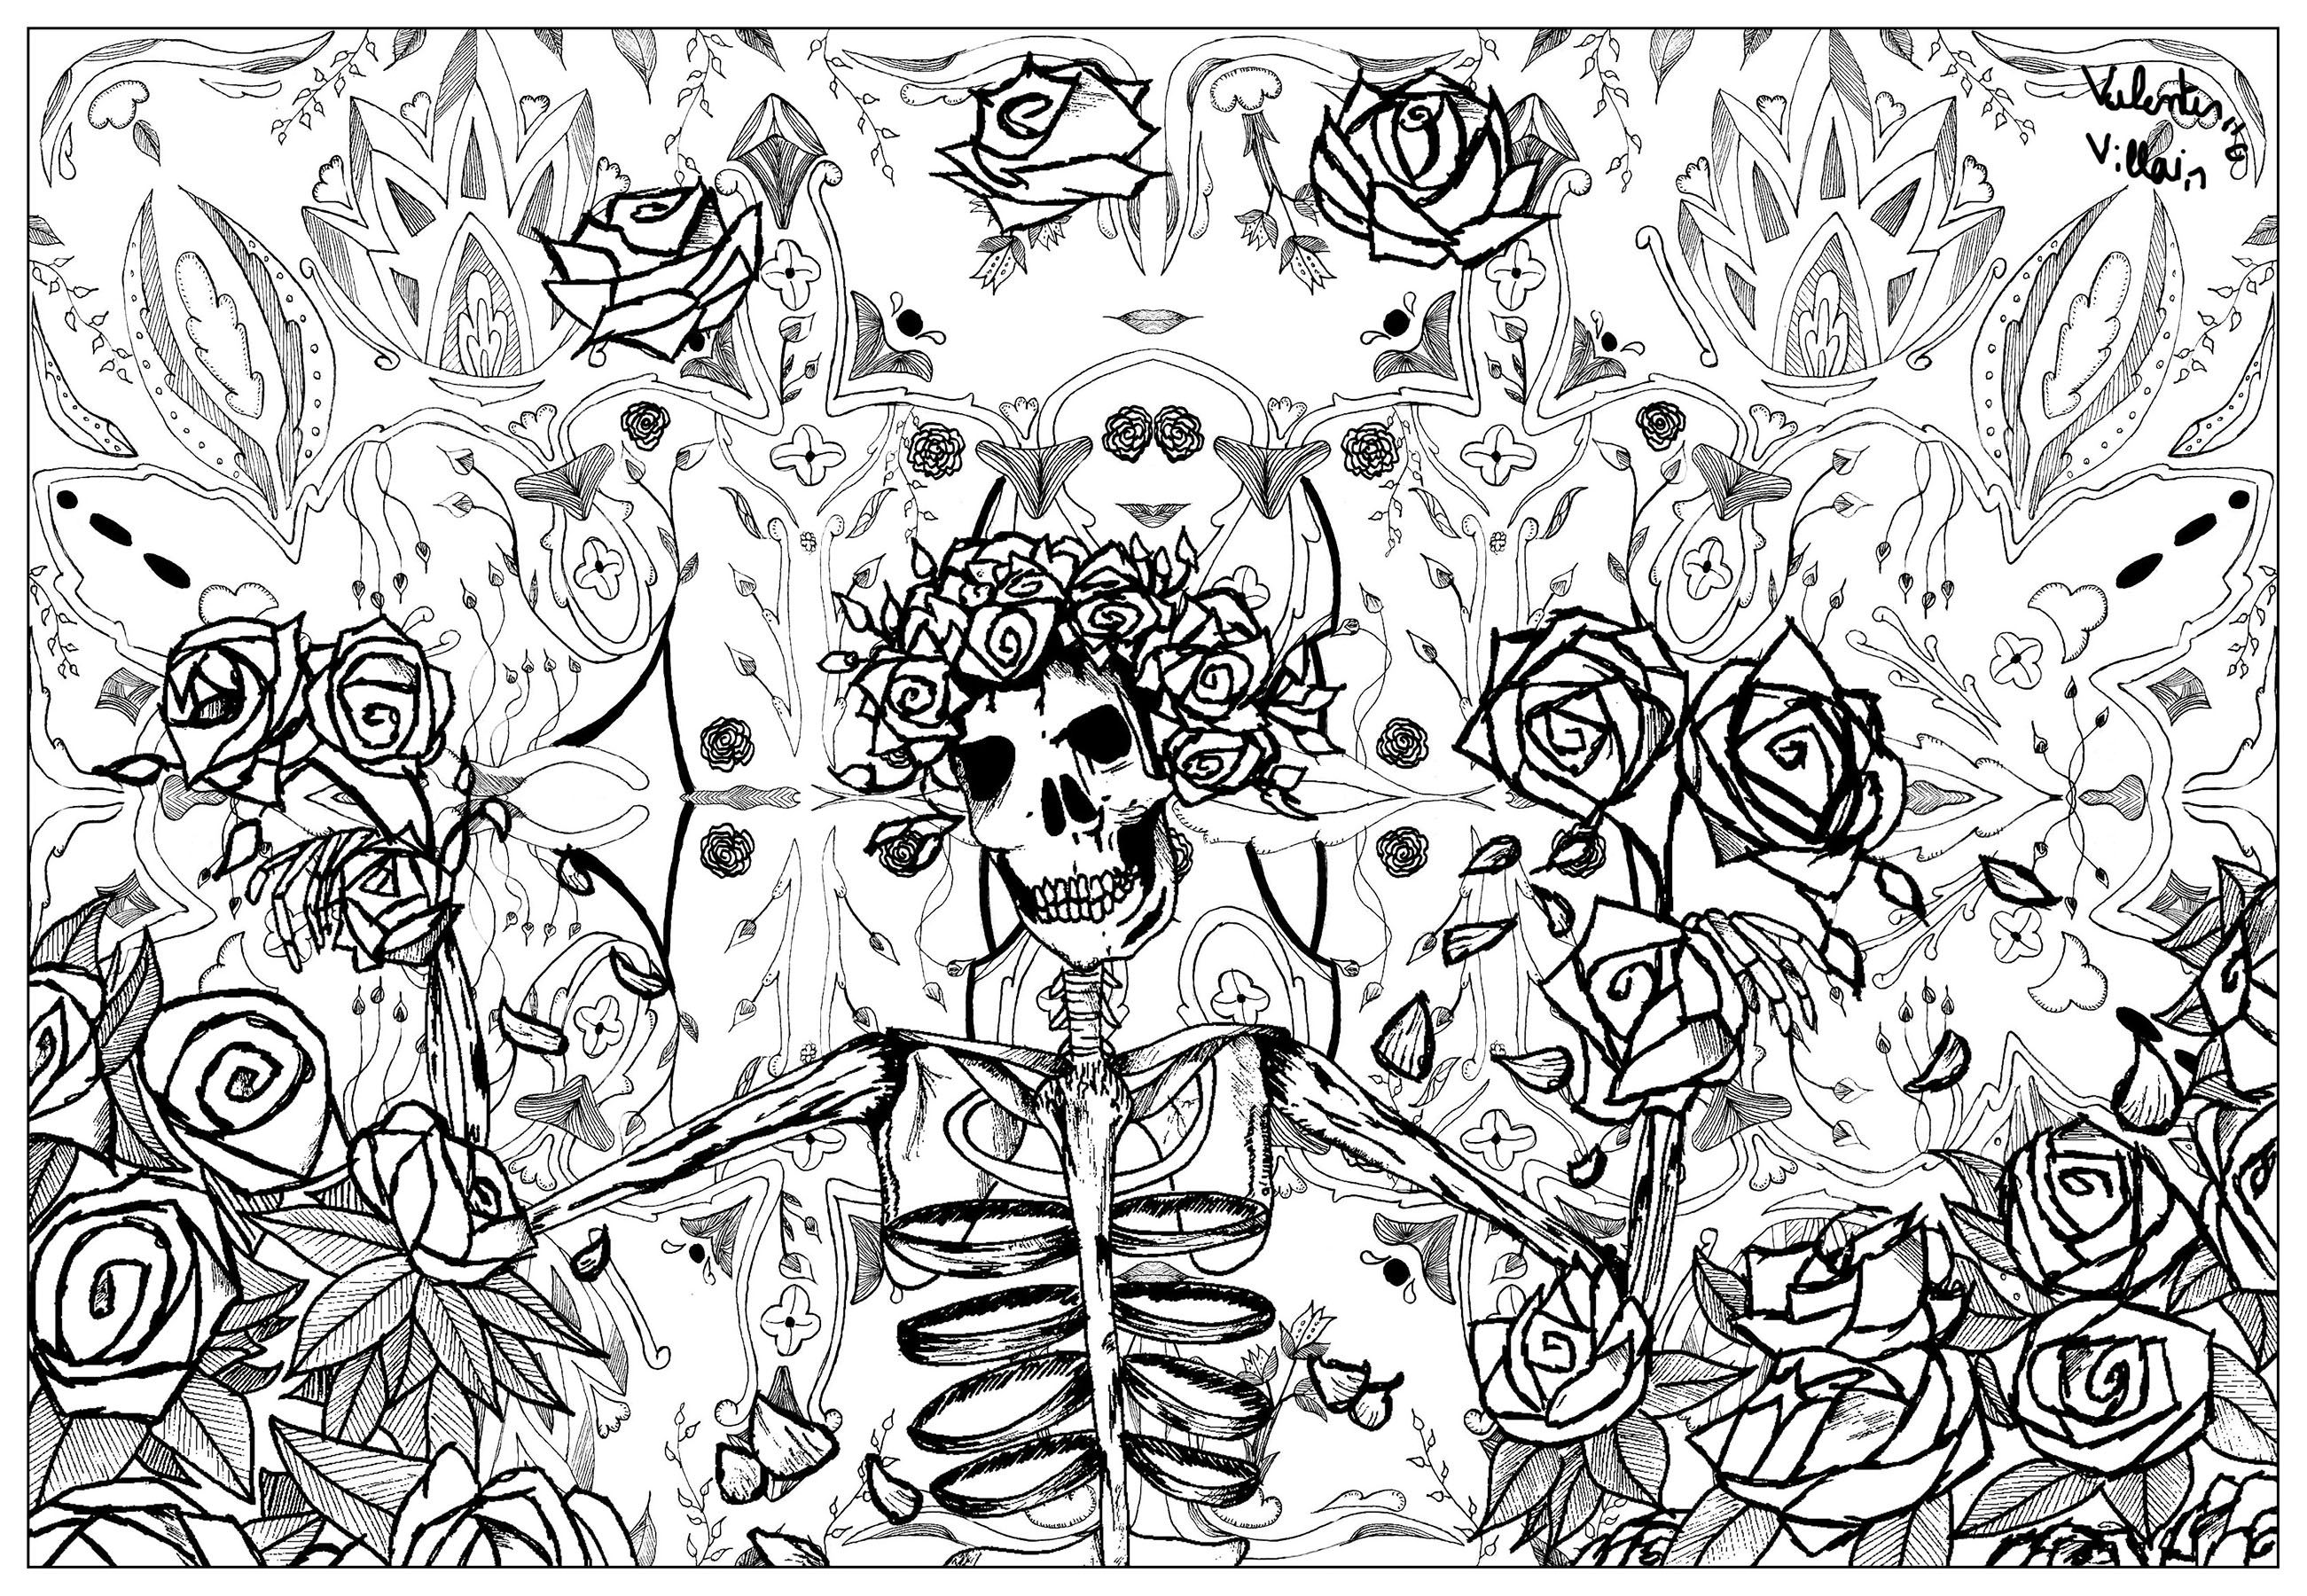 An original illustration inspired by the visuals of the american rock band grateful dead considered